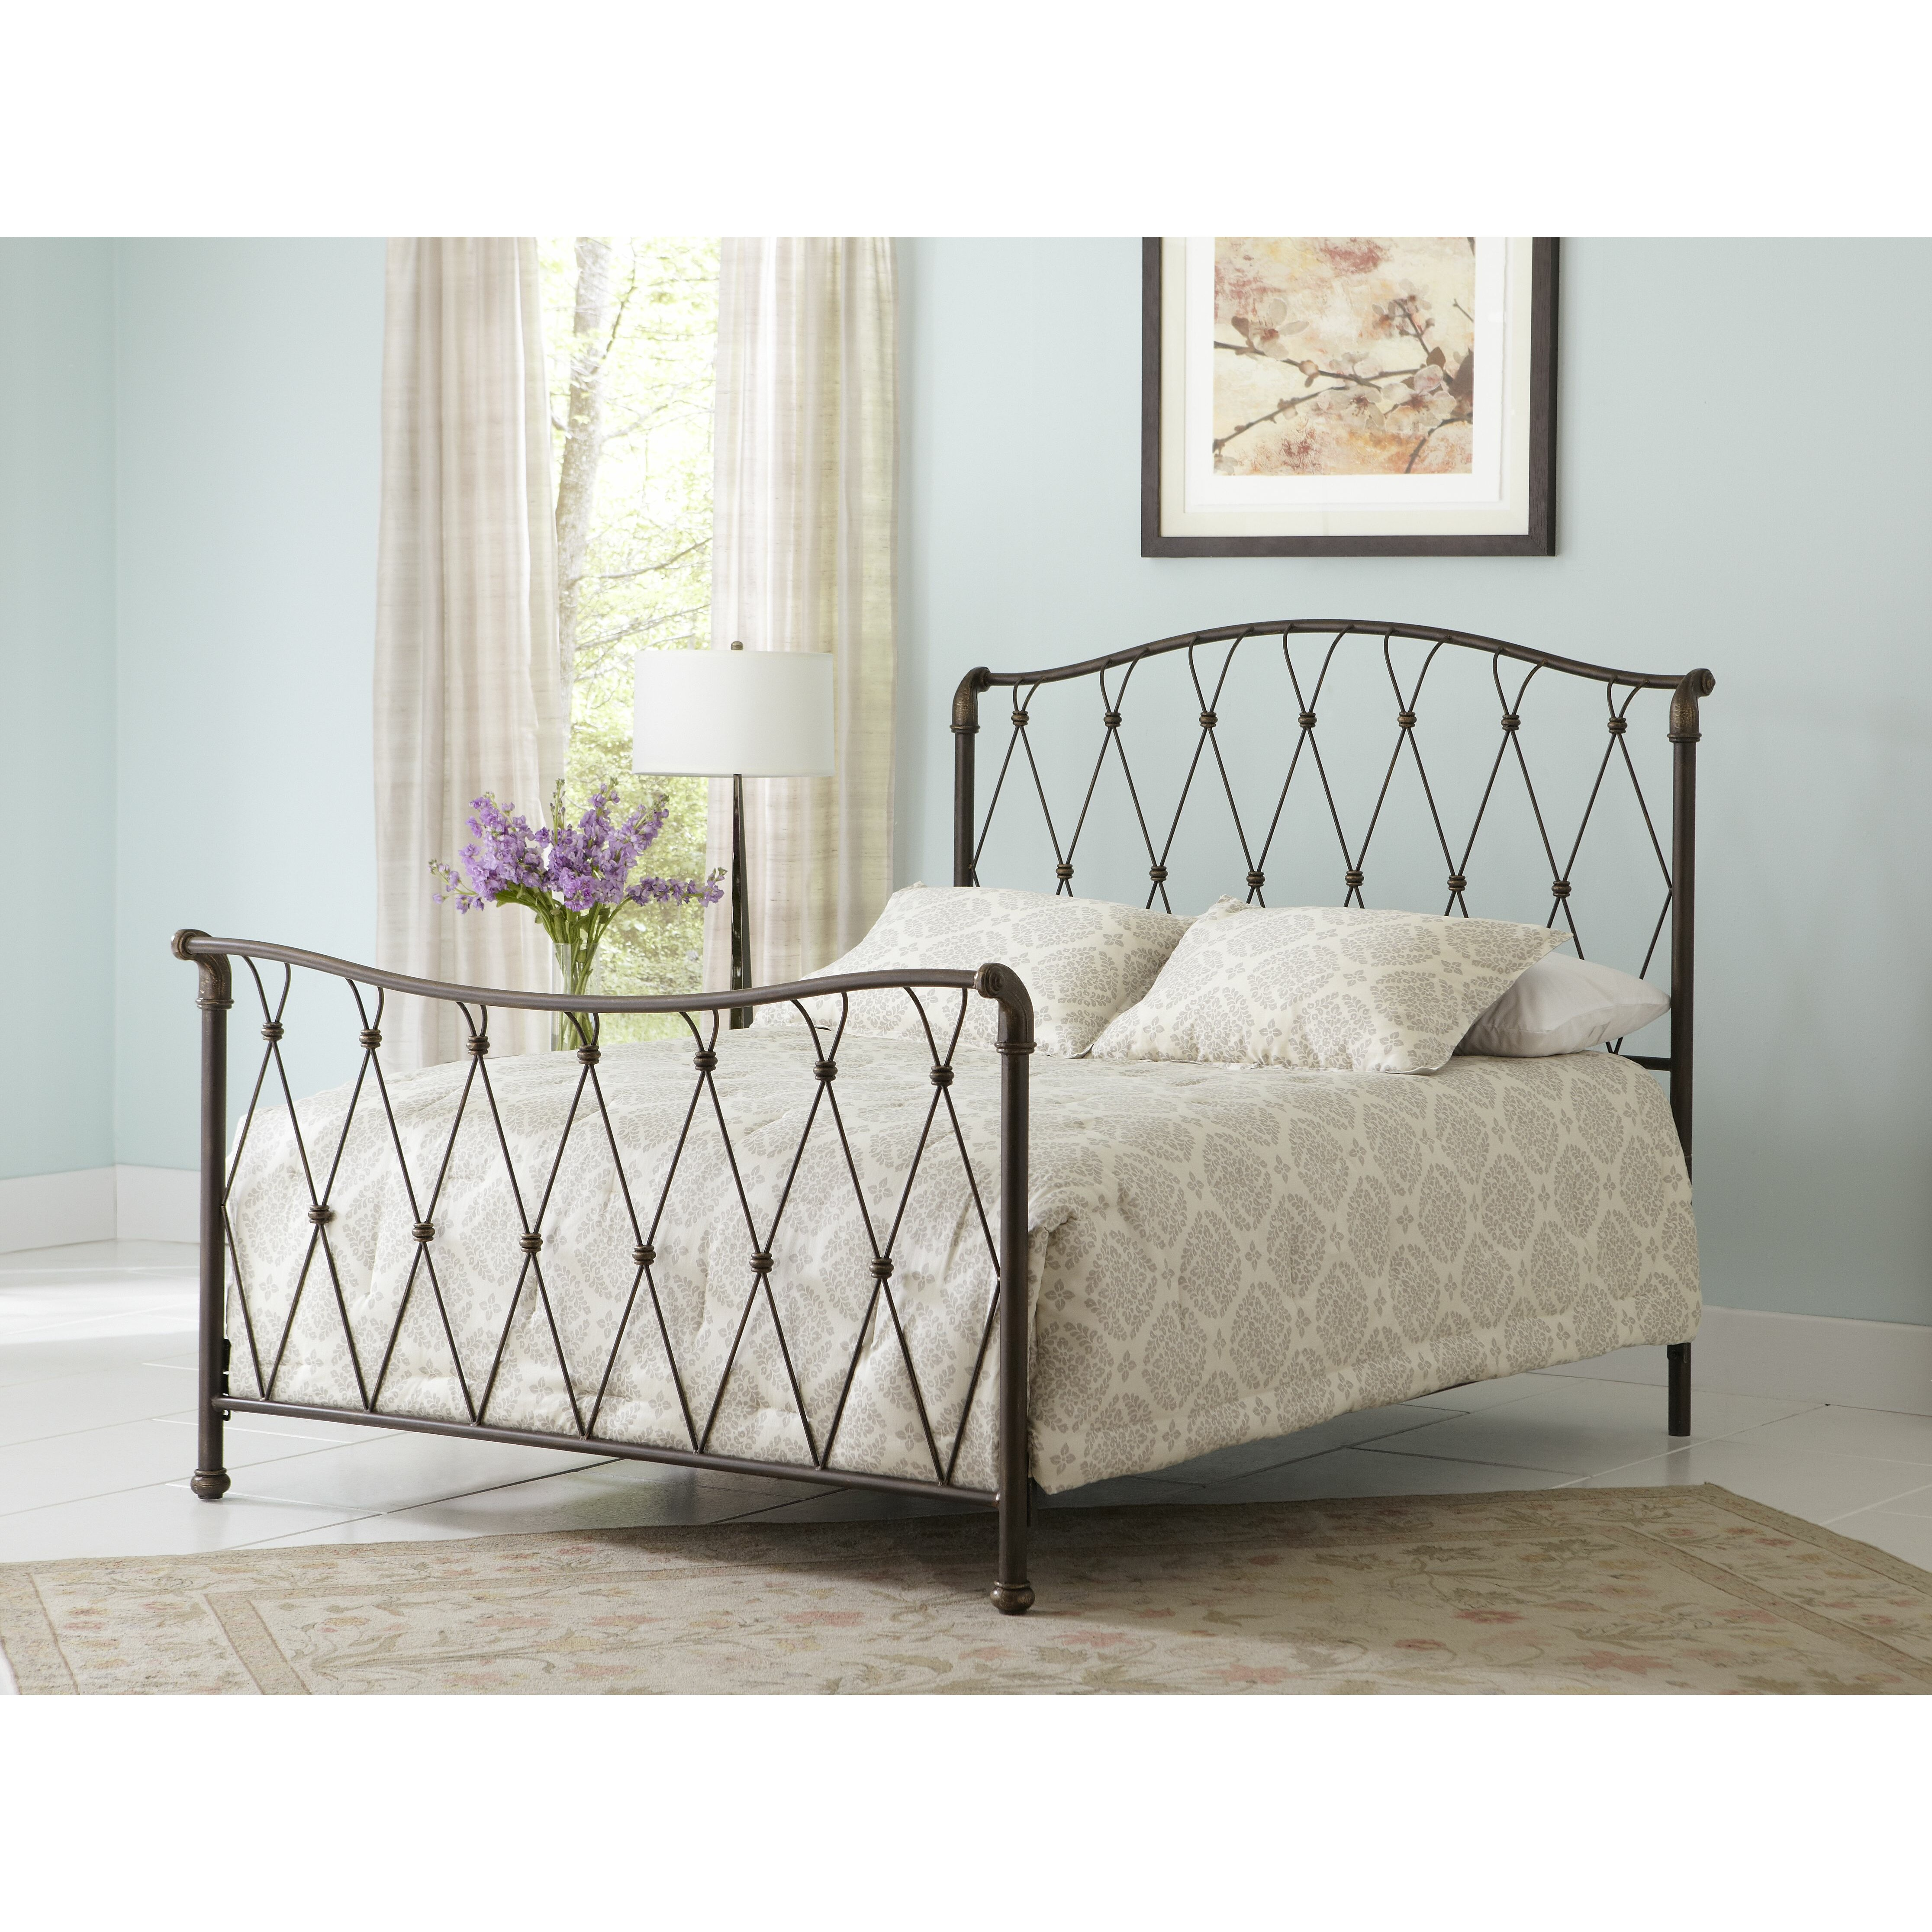 Largo Shalimar Open-Frame Headboard and Footboard & Reviews | Wayfair